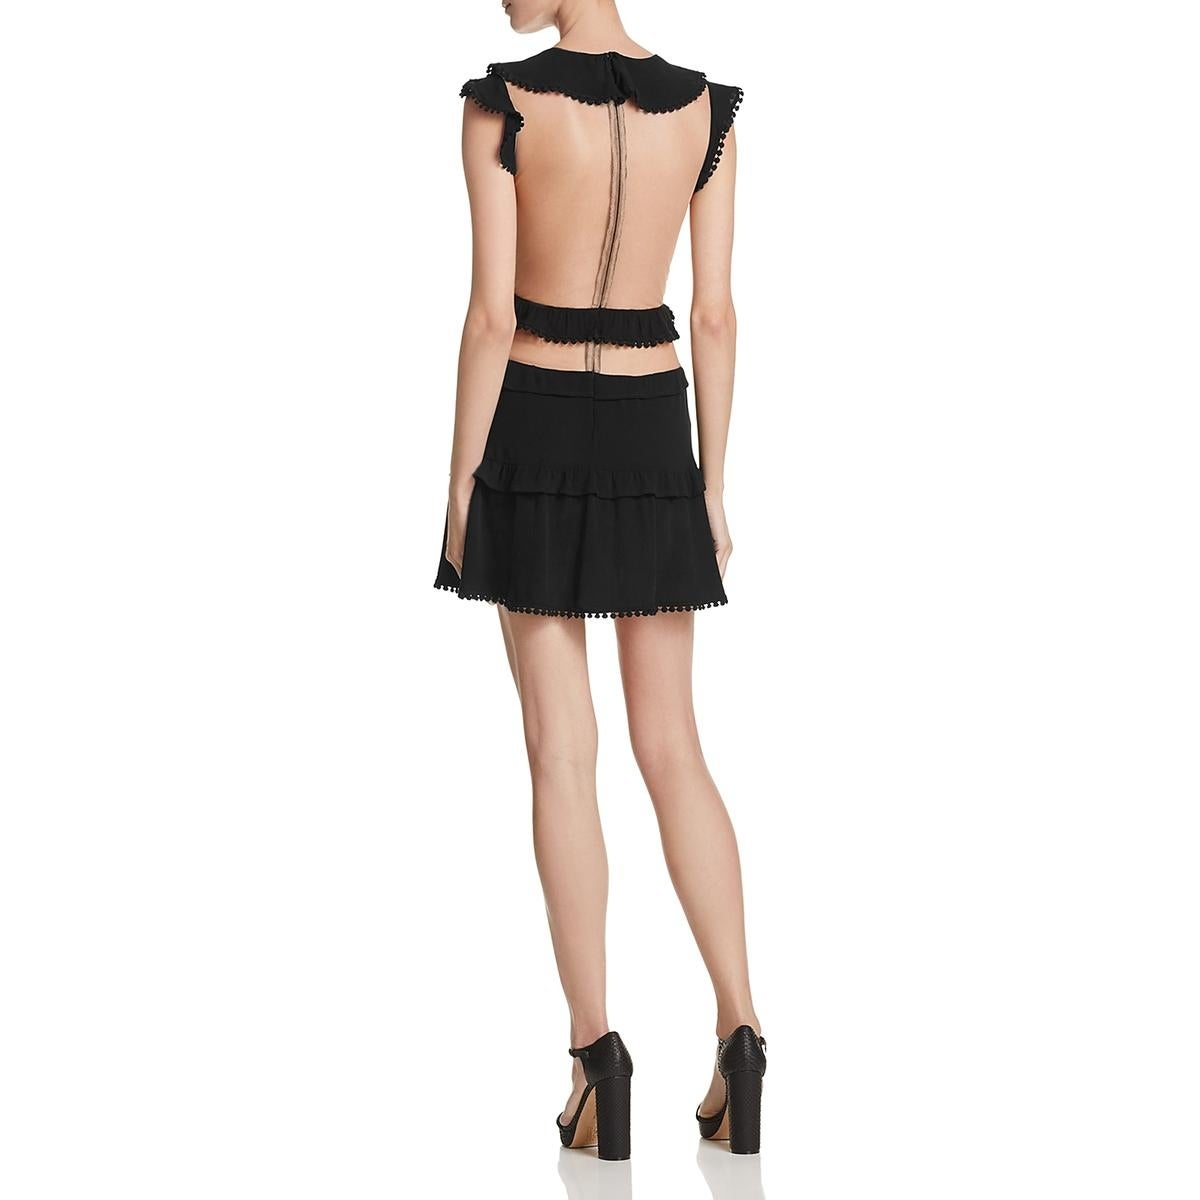 8dd4d48d4f5f Shop For Love & Lemons Womens Laney Lou Mini Dress Embroidered Mesh - Free  Shipping Today - Overstock - 21491190